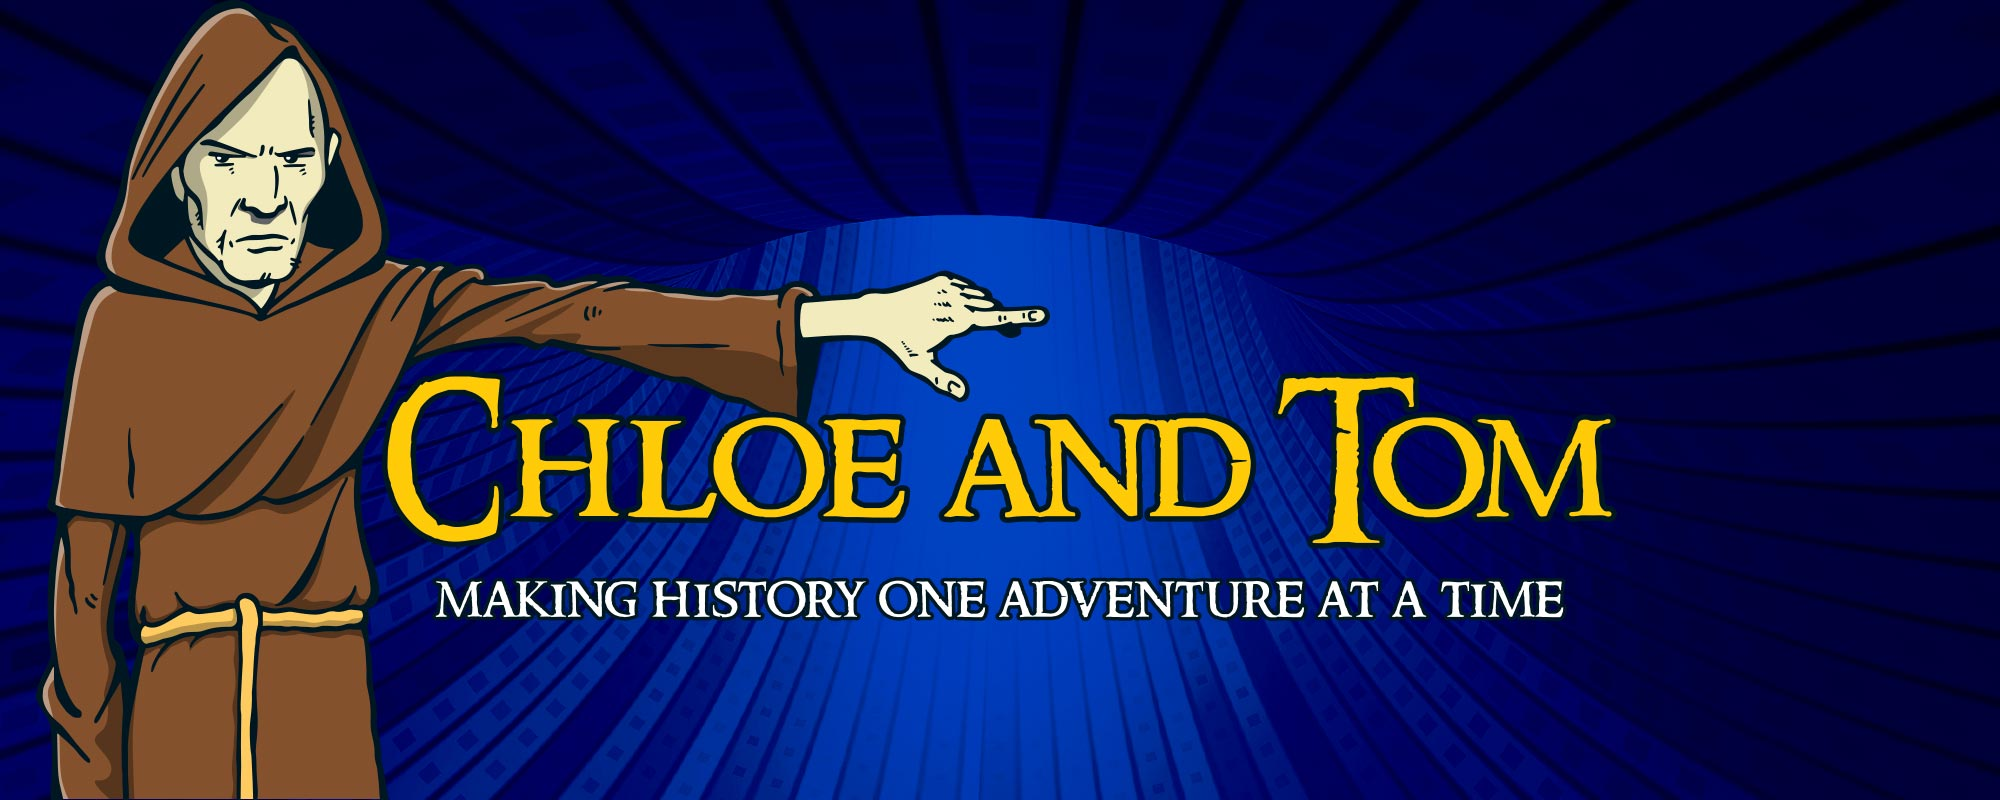 Chloe and Tom - Making history one adventure at a time